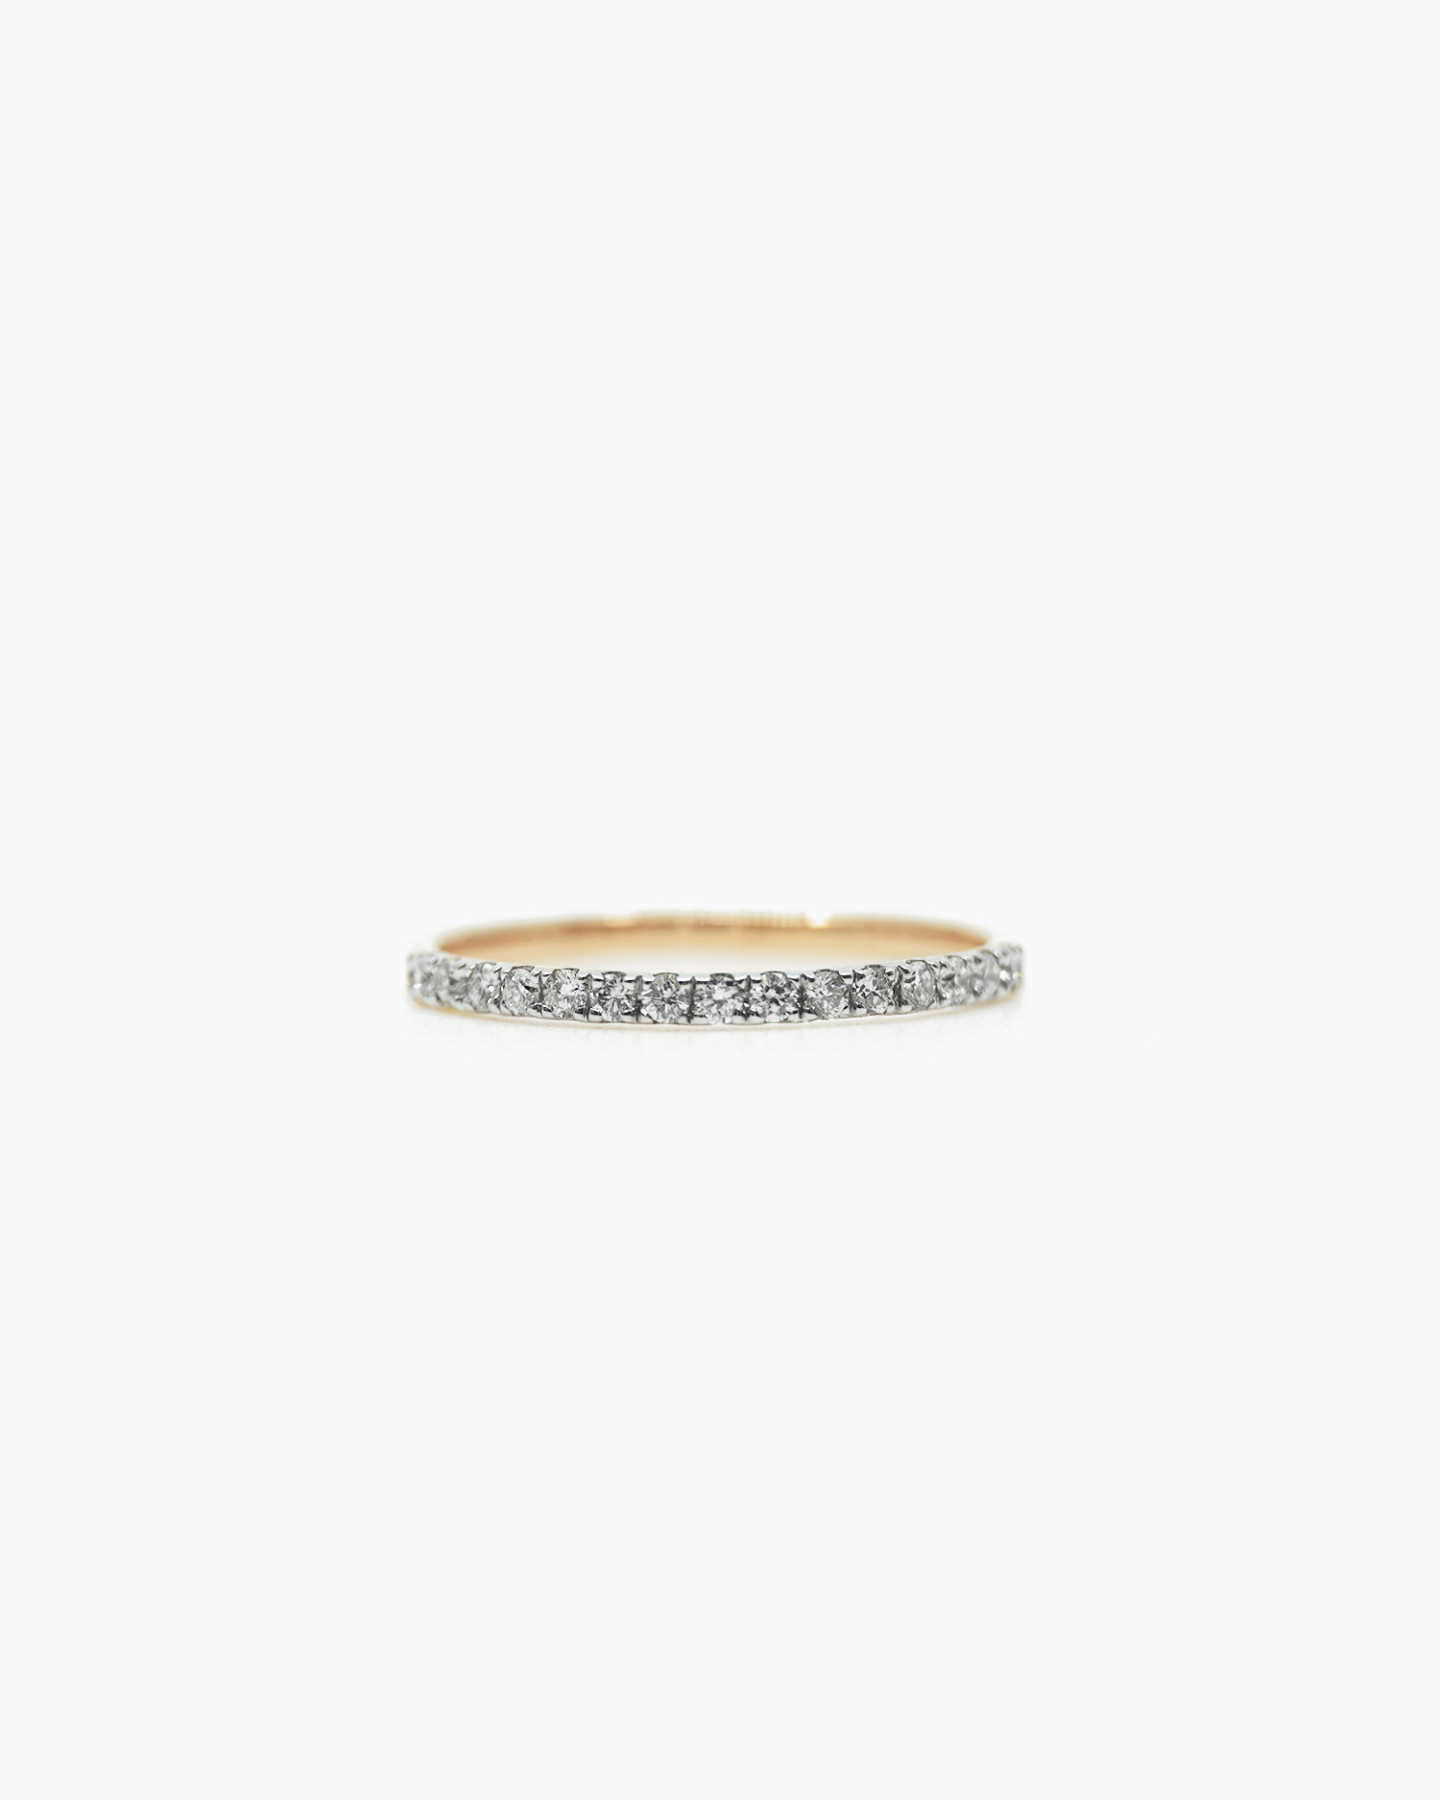 Diamond Wedding Band - Yellow Gold